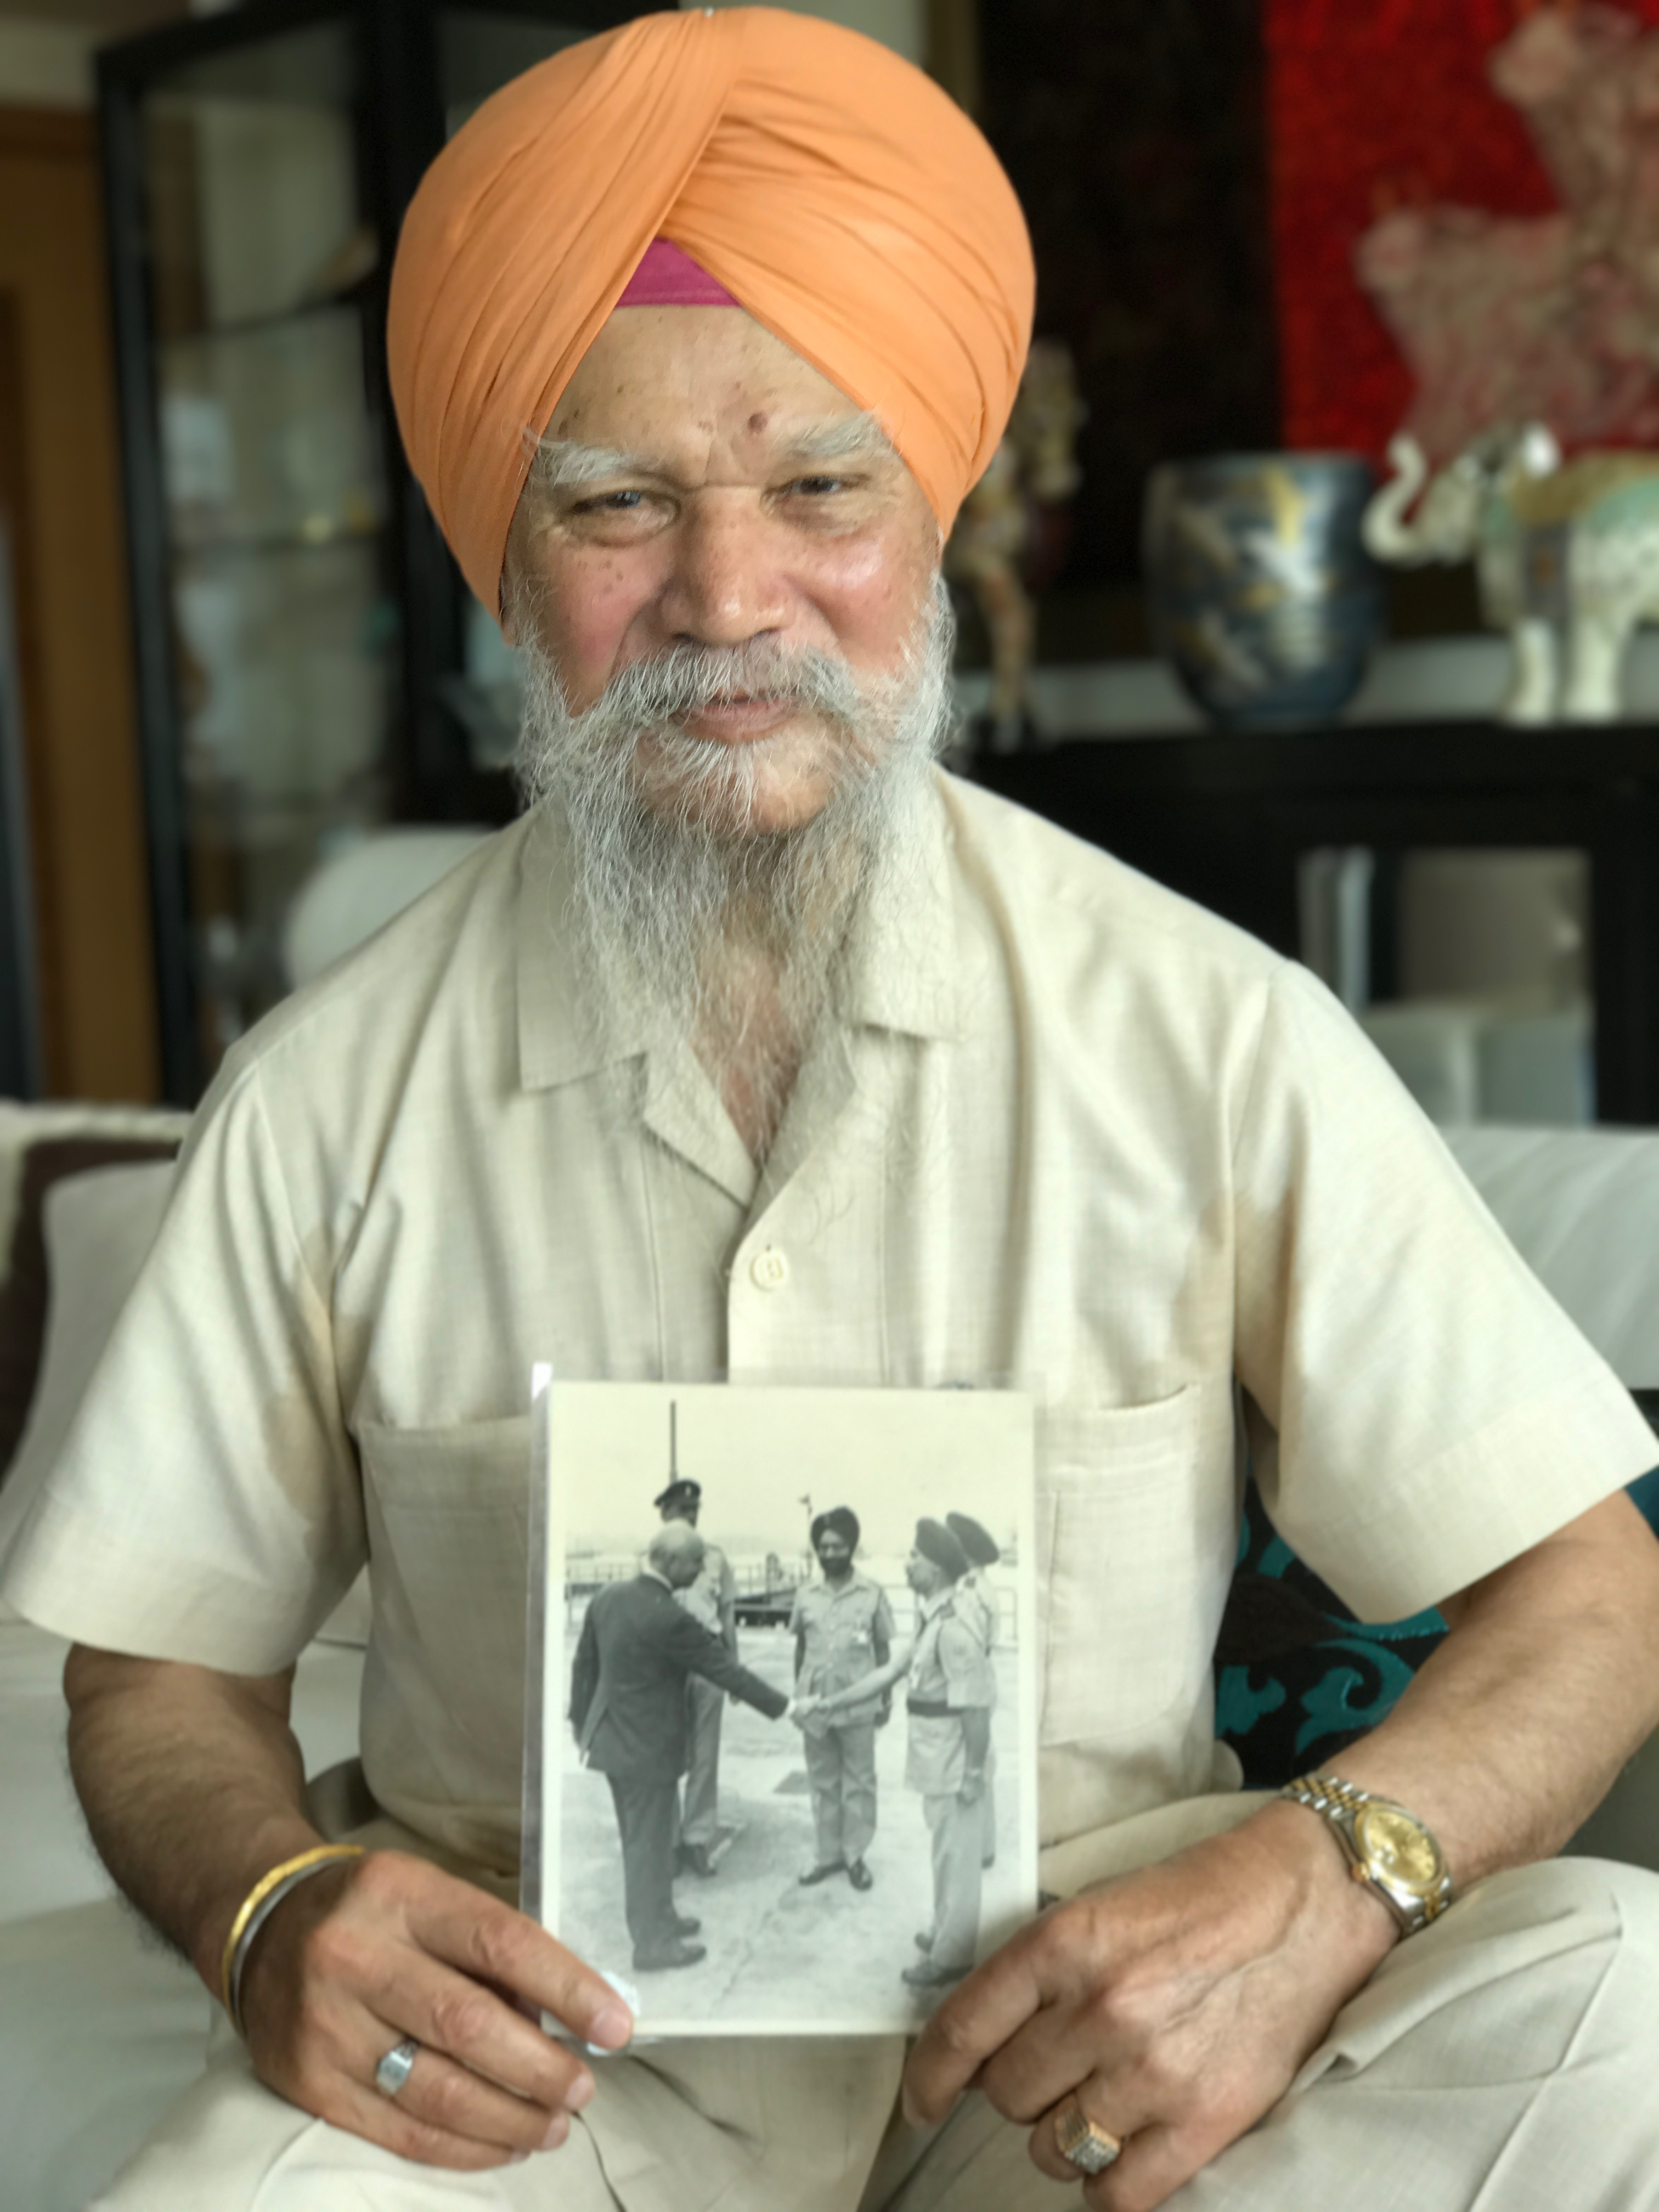 Gill Sukha Singh, 77, former president of the Sikh Temple, and a retired British Army serviceman, holds an undated photograph of himself greeting a former colonial governor, at his home in Park Island, Hong Kong, on June 22, 2017.  Hong Kong is my birthplace. My father was in the British Army and he married my mother here.  She was Chinese and spoke Cantonese to me. There were many such marriages. I joined the British army in June 1960 and retired in 1993 when my unit was disbanded. I was in the army depot police. Sikhs were employed to guard ammunition because we don't smoke. I've never thought of leaving. Punjabis have prospered here. Many of our children are professionals and people have beautiful homes. My son is the first person of Indian descent born here to become a doctor. This is our home. I consider myself a Hong Kong person.